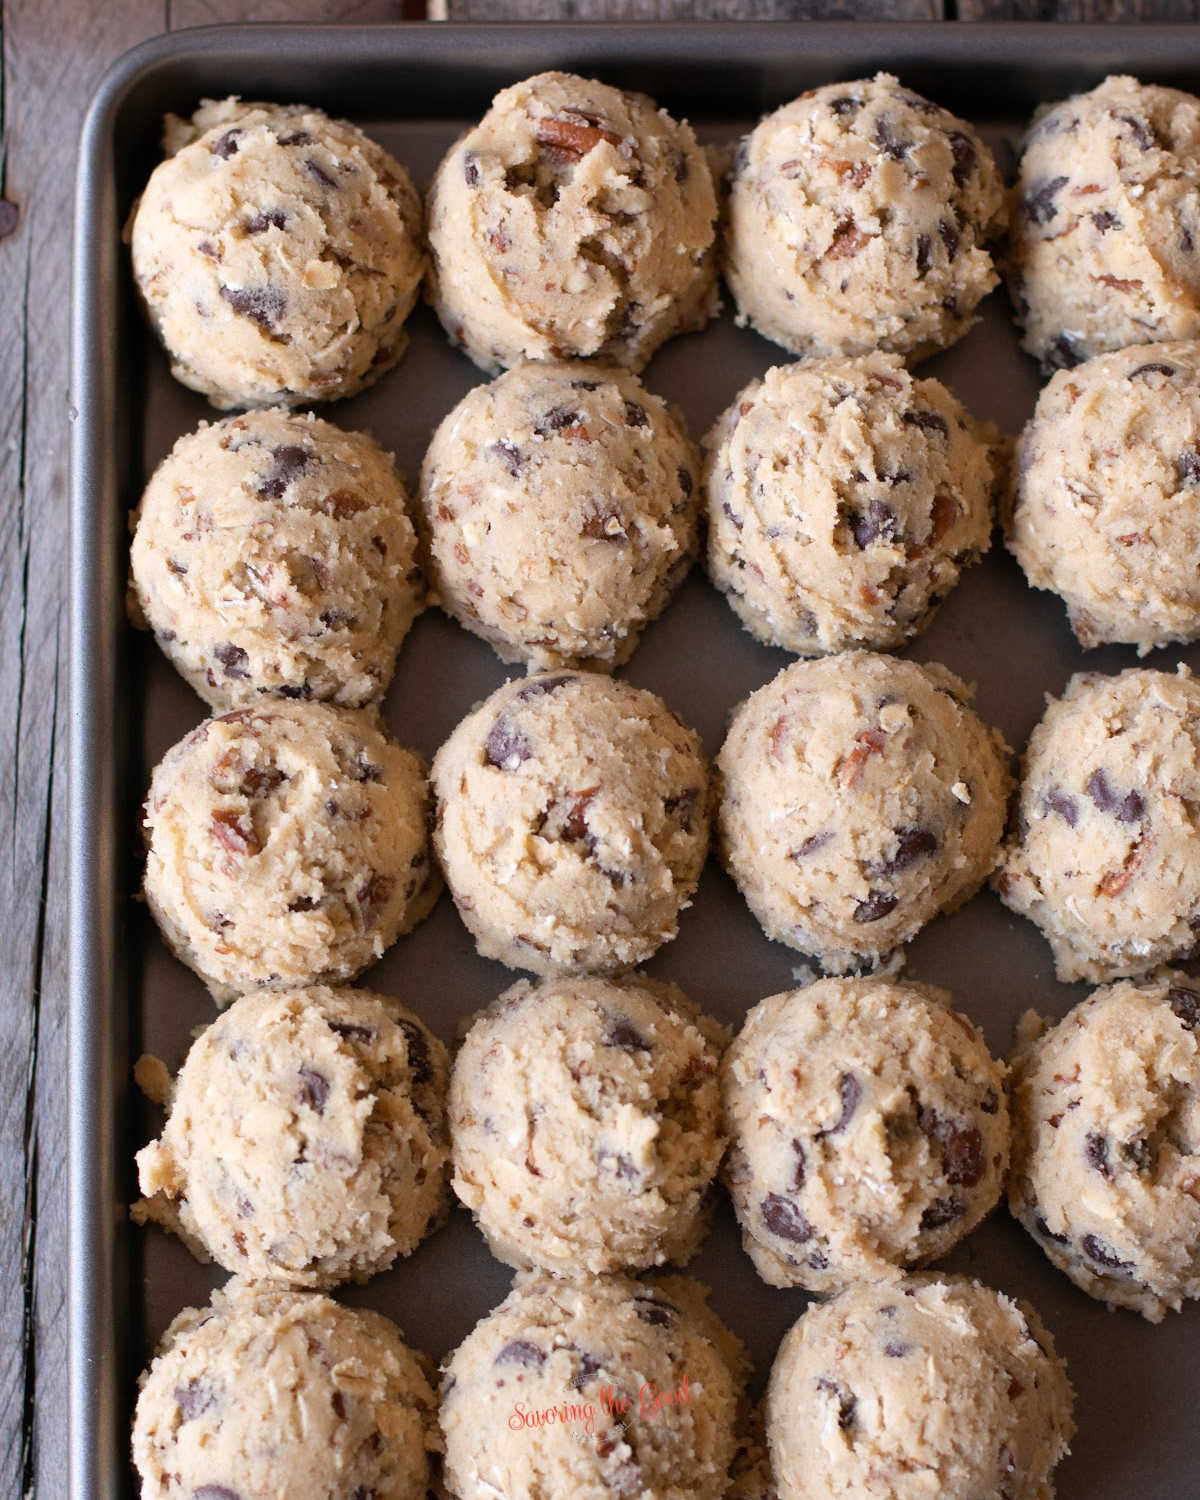 doubletree cookies scoops on a cookie sheet for freezing